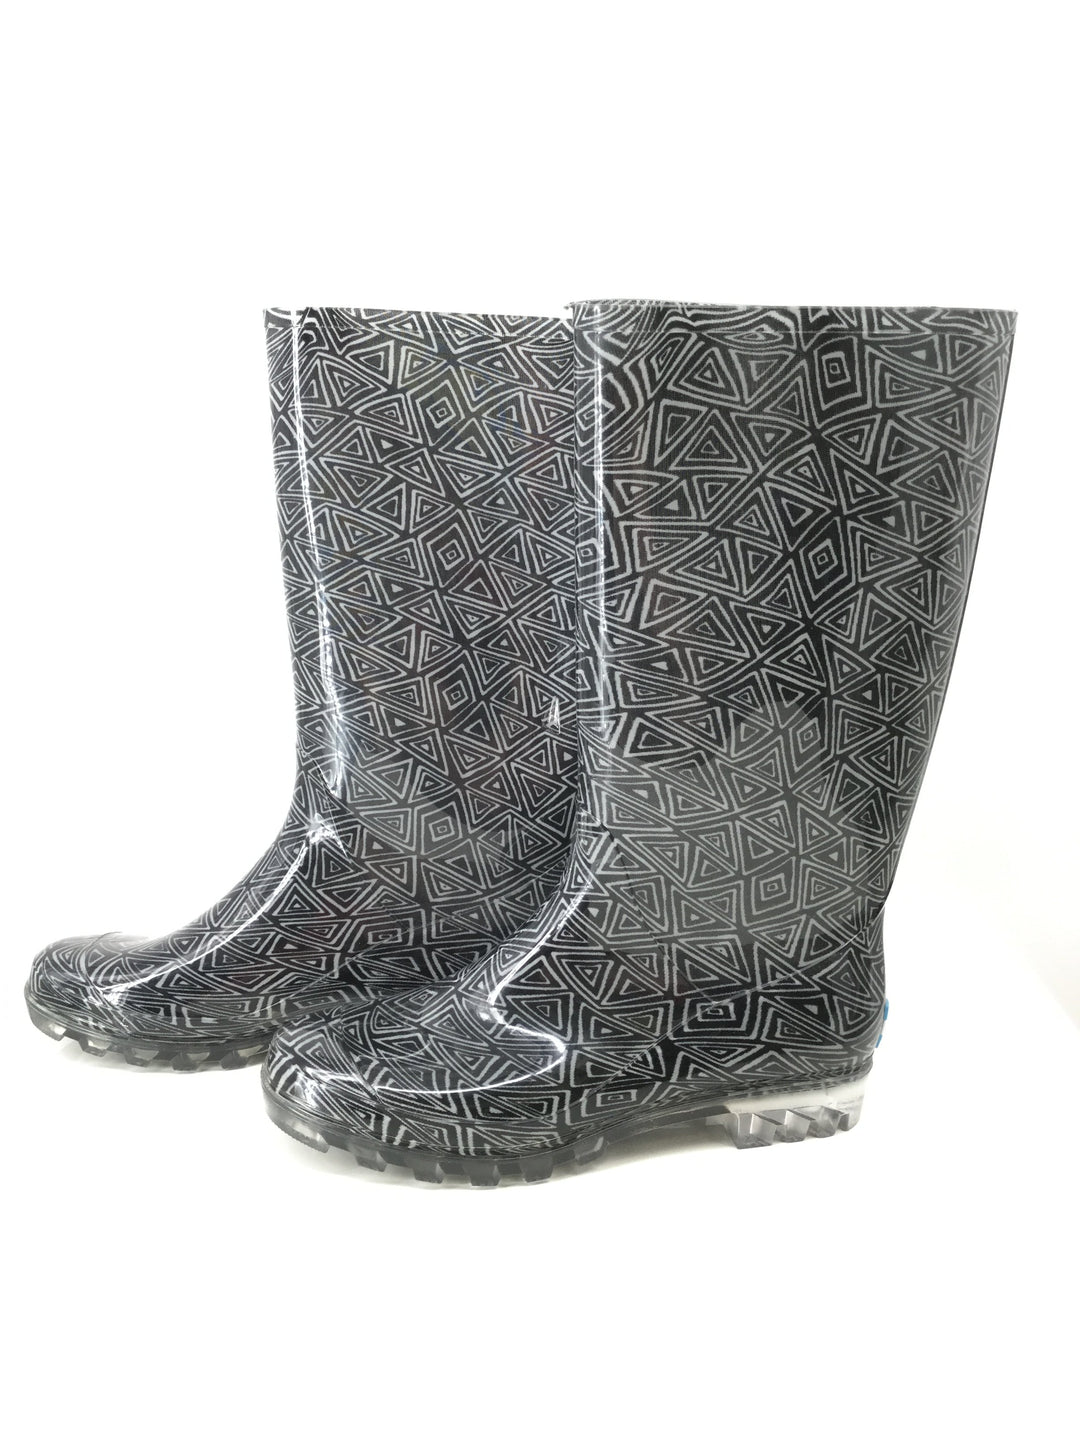 Toms Boots Rain Size:10 - <P>BLACK TOMS RAIN BOOTS SIZE 10. BLACK AND WHITE TRIANGULAR DESIGN.</P>